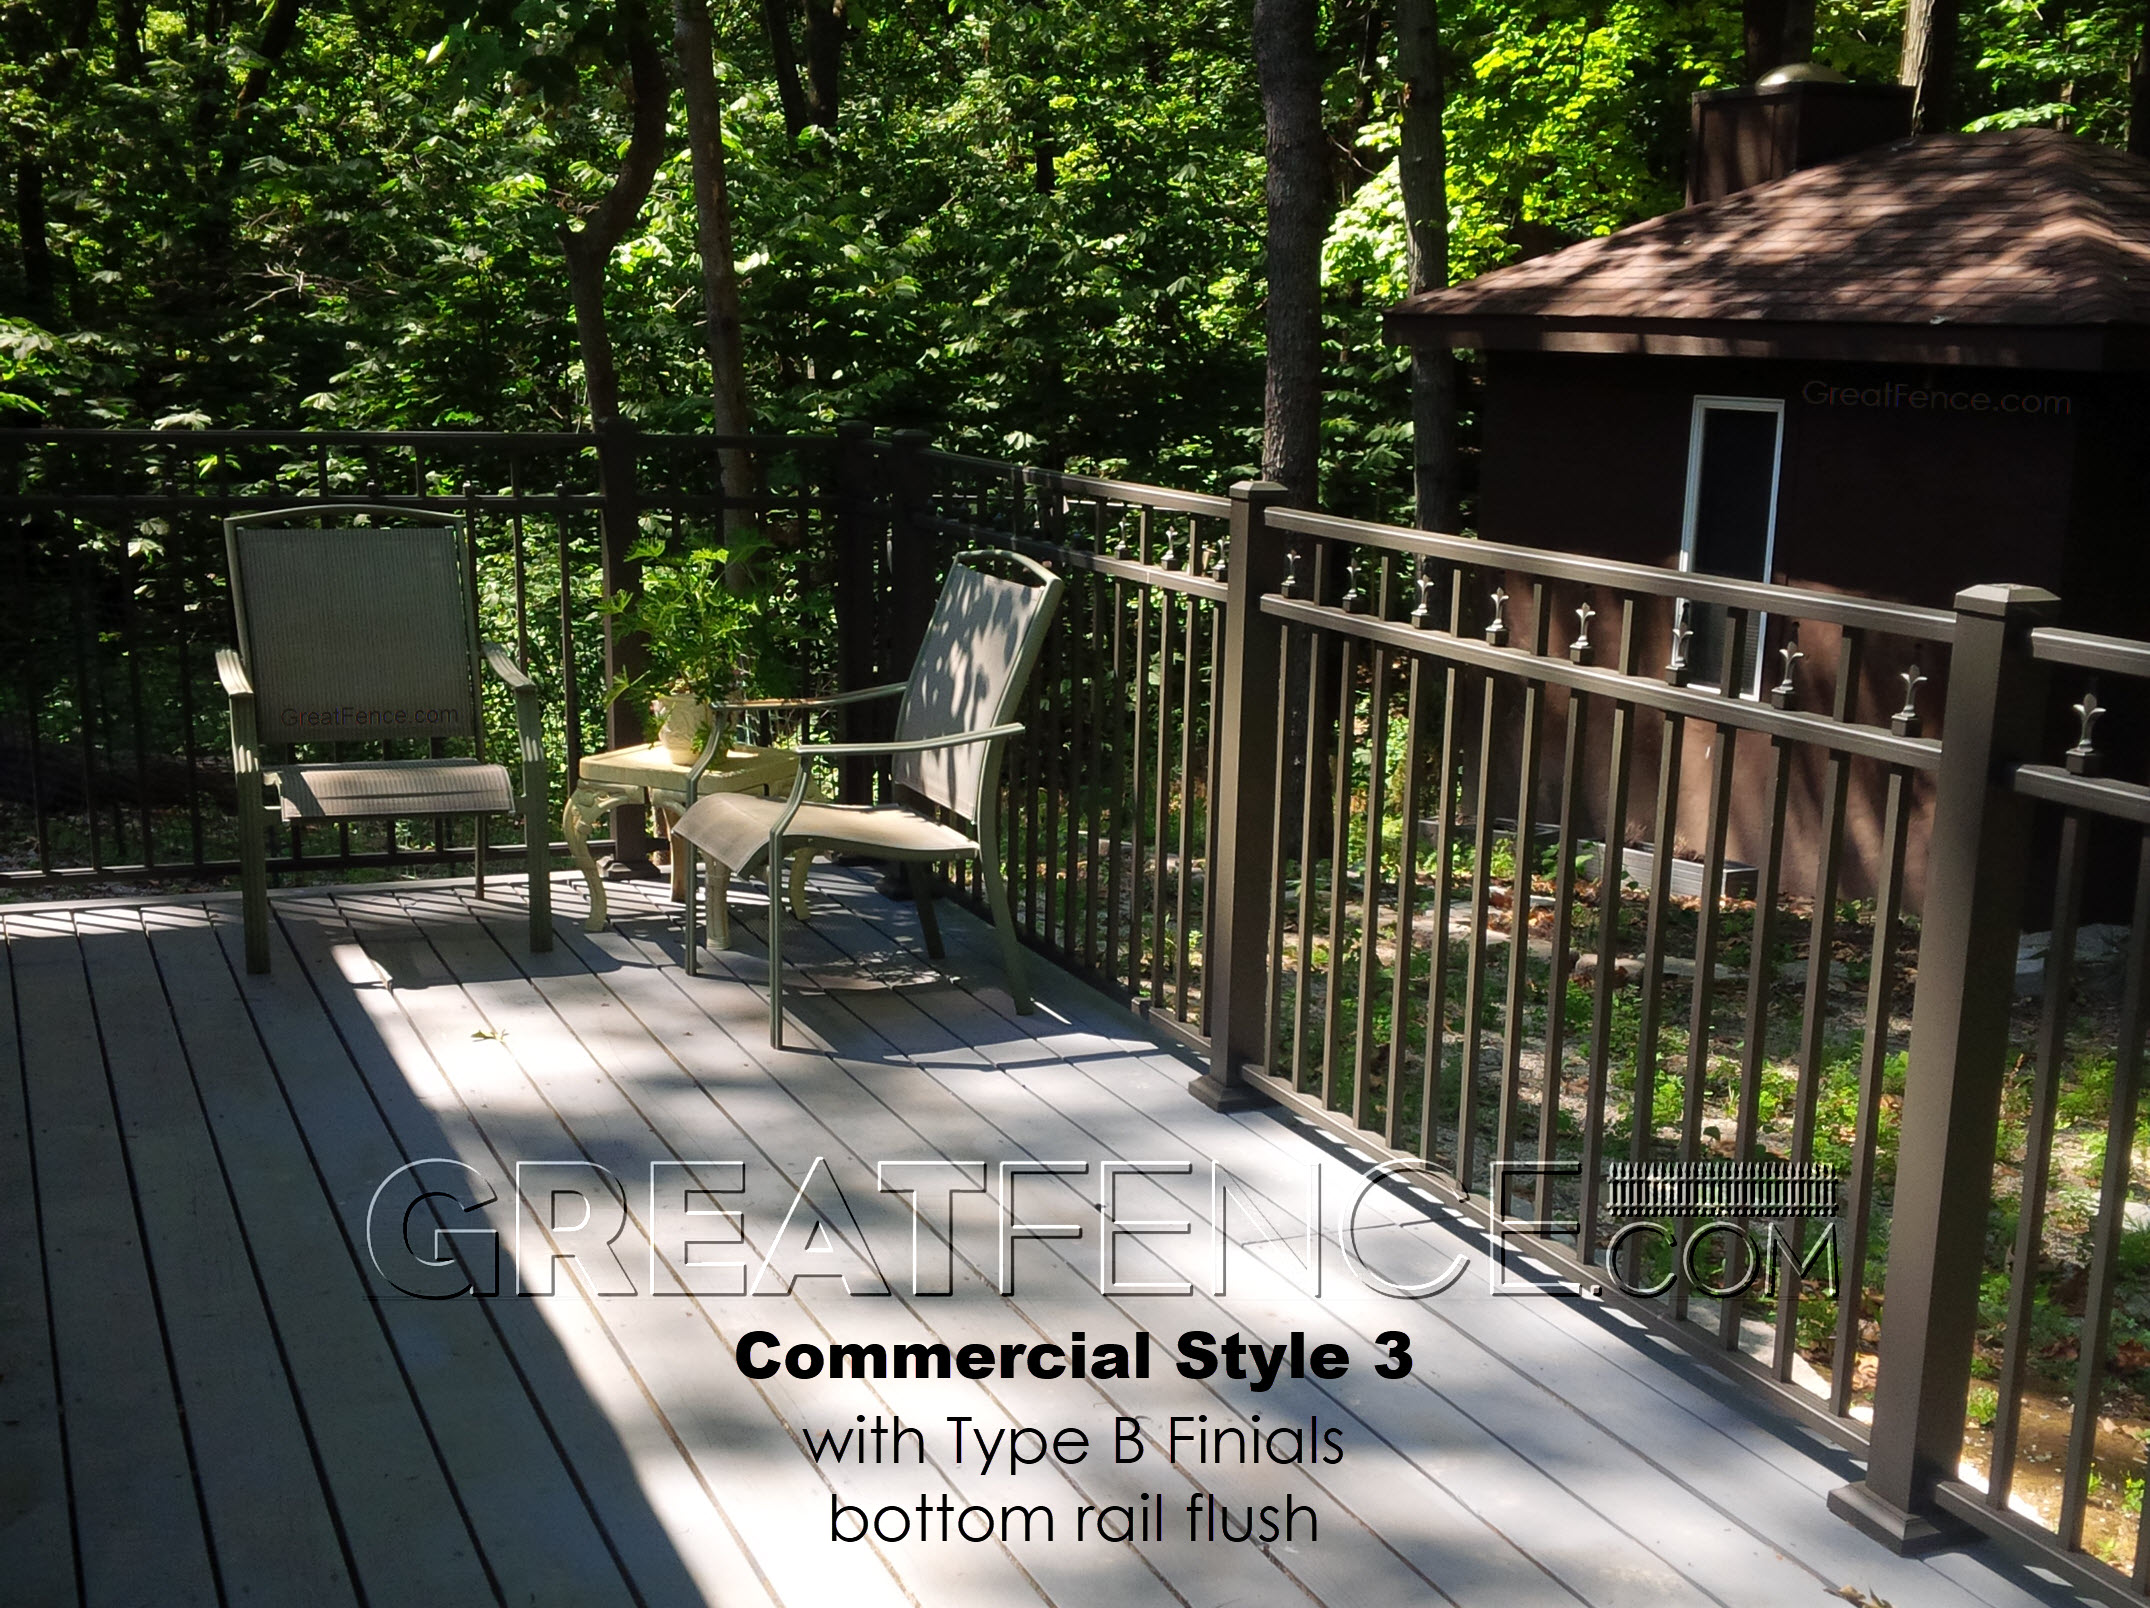 how private is an aluminum fence